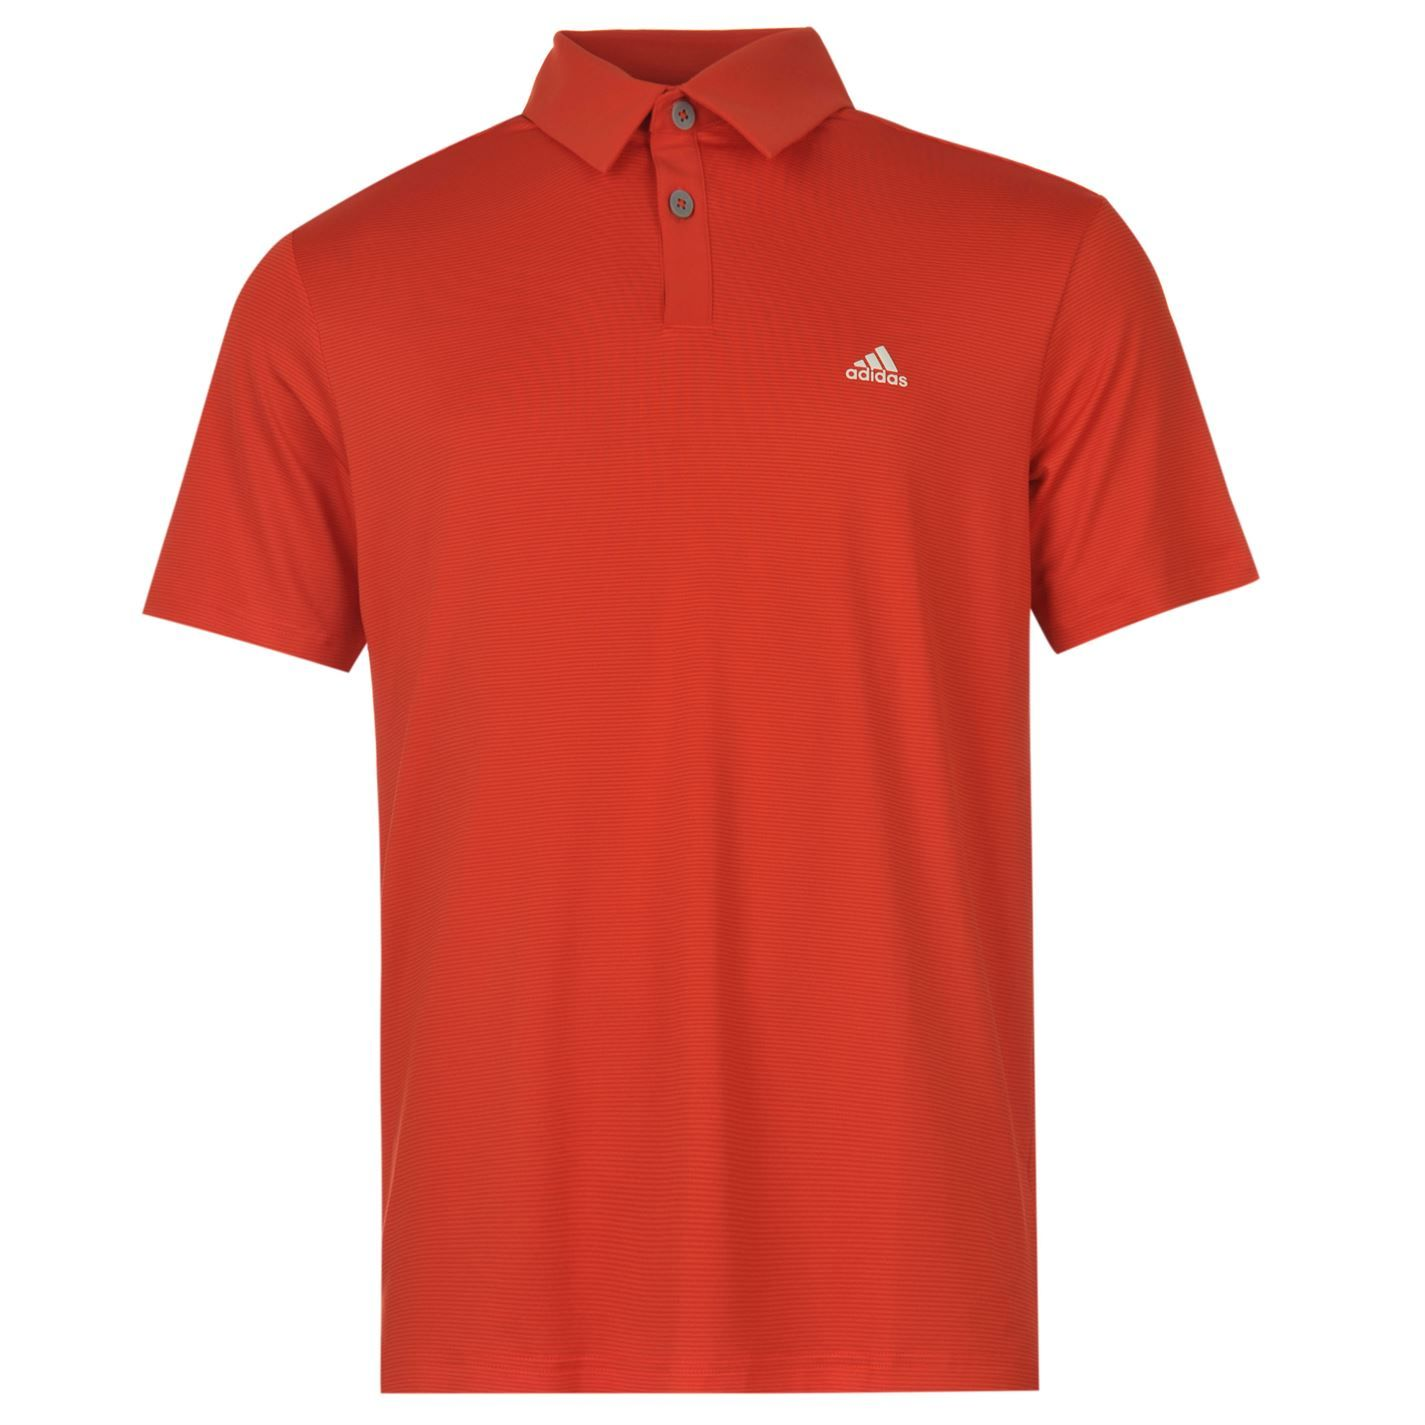 adidas orange polo shirt